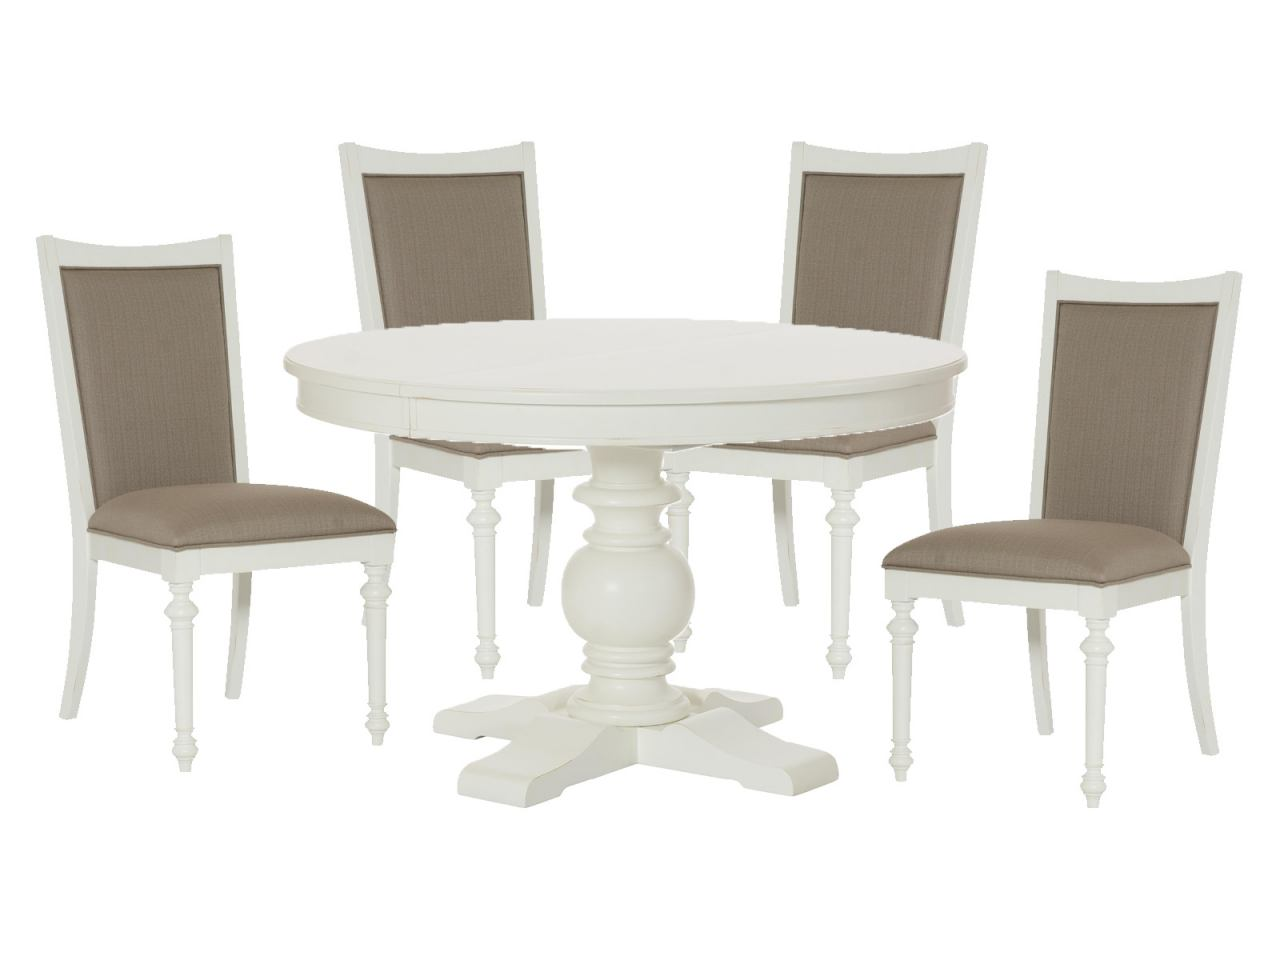 American Drew Lynn Haven 5-Piece Round Dining Set in Dover White